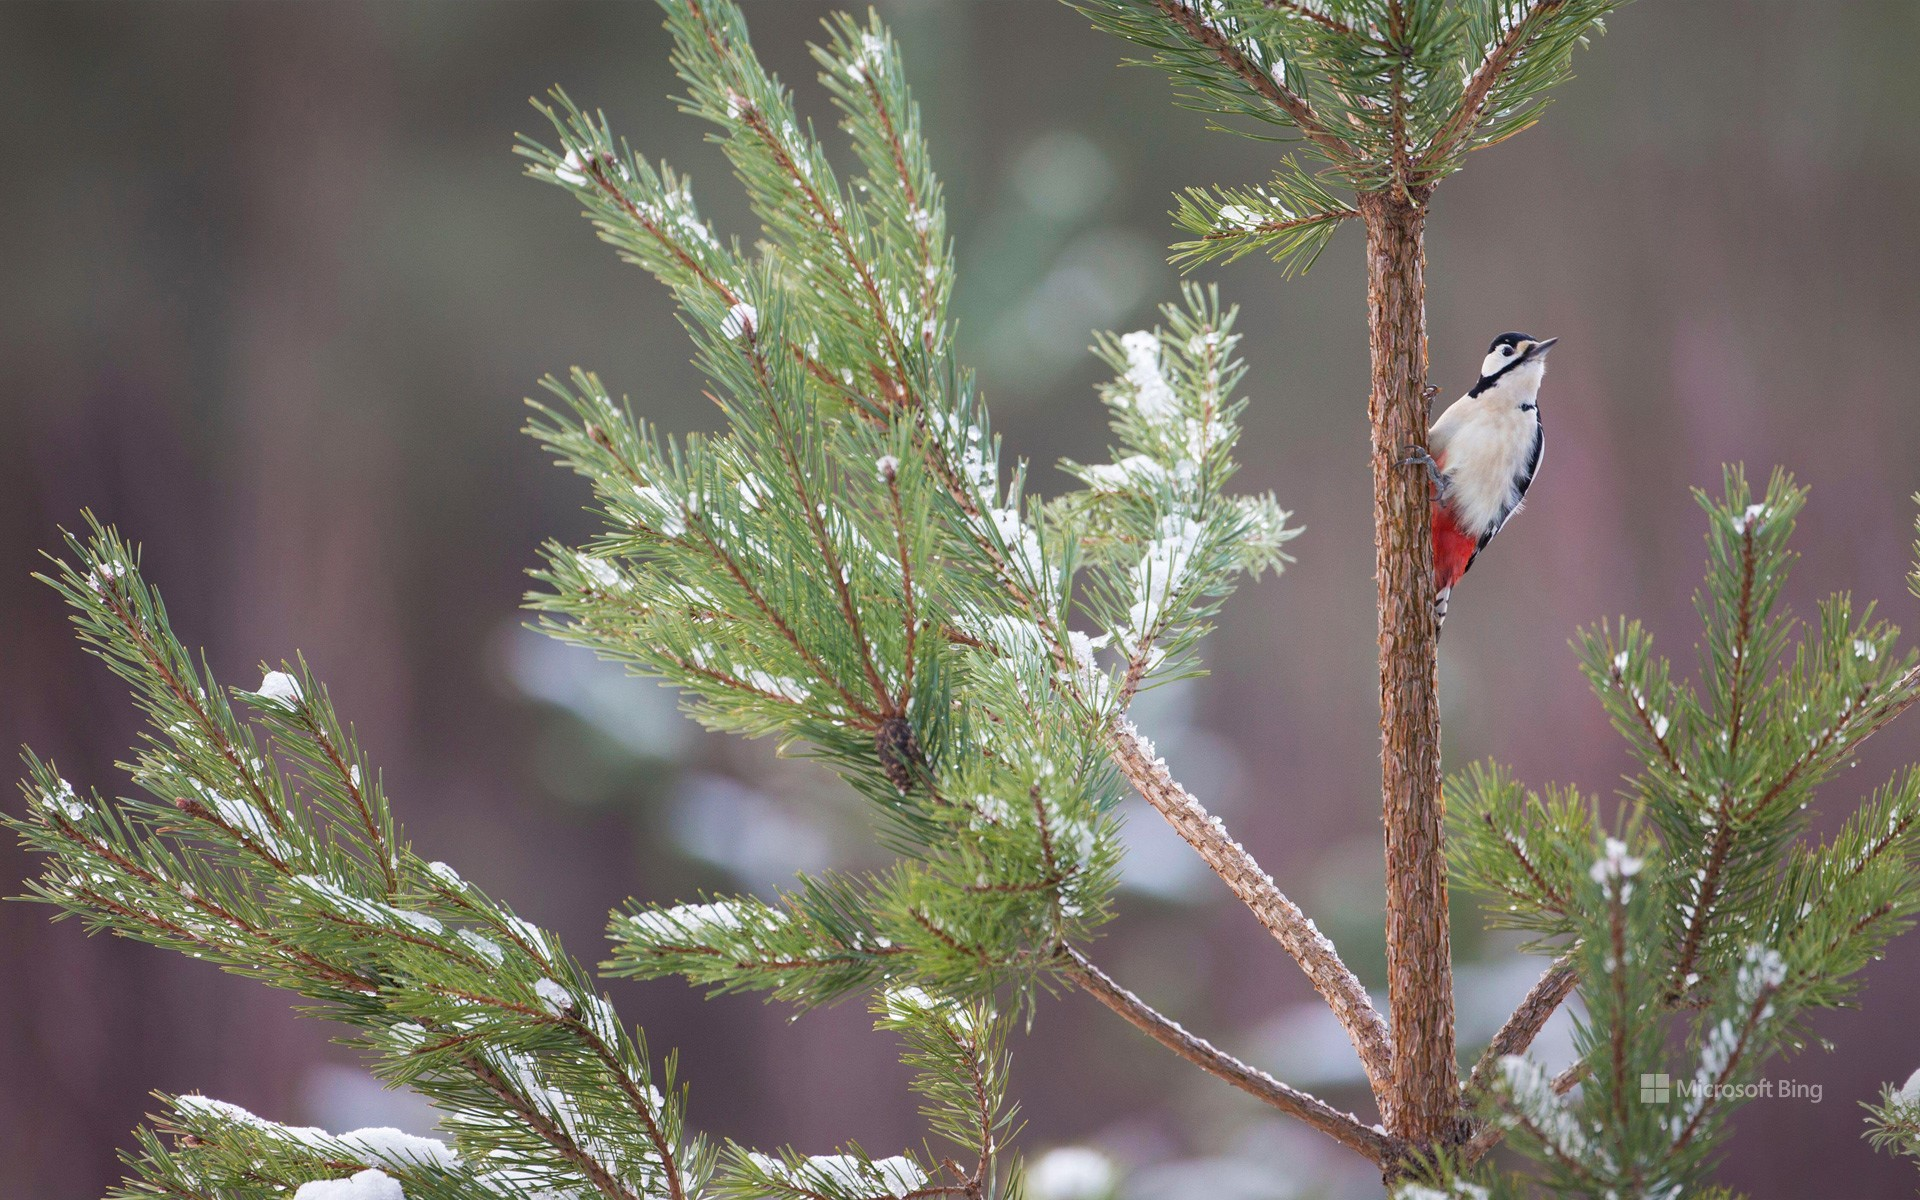 Great spotted woodpecker on Scots pine tree, Glenfeshie, Cairngorms National Park.